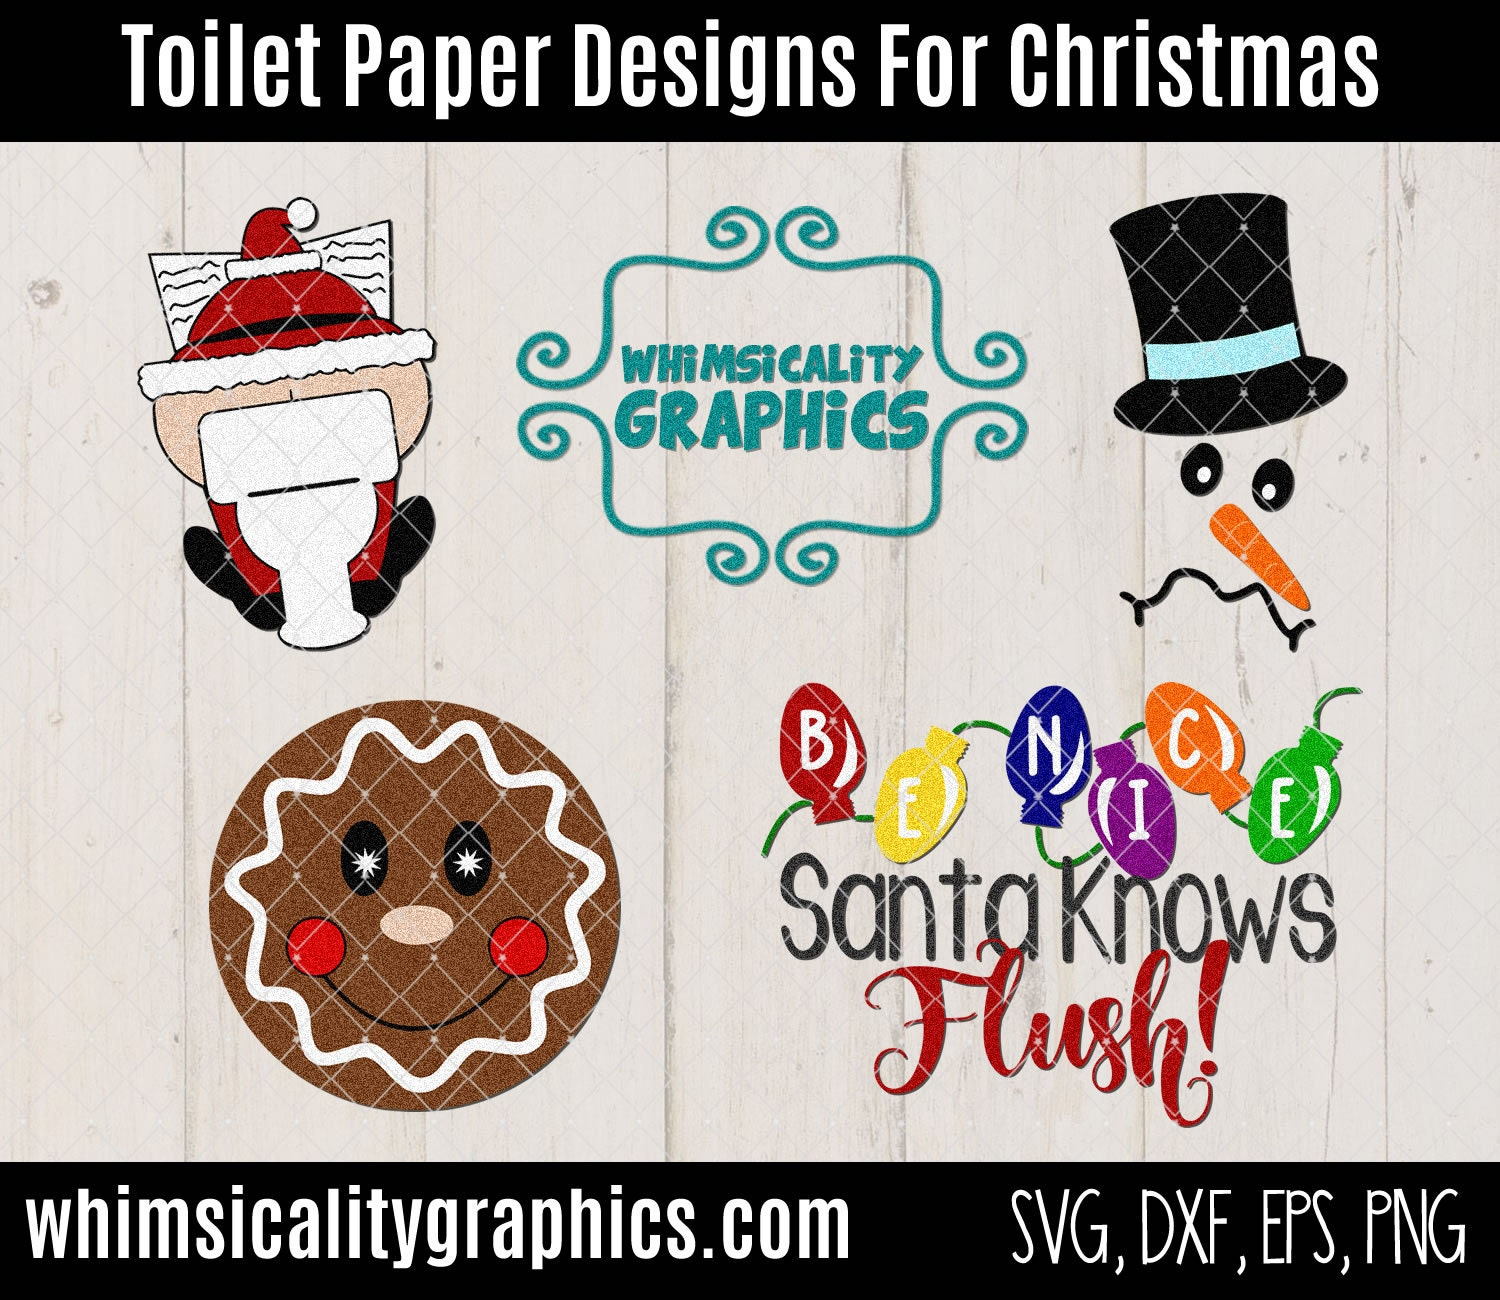 Toilet paper designs for christmas with svg dxf png for Design your own toilet paper